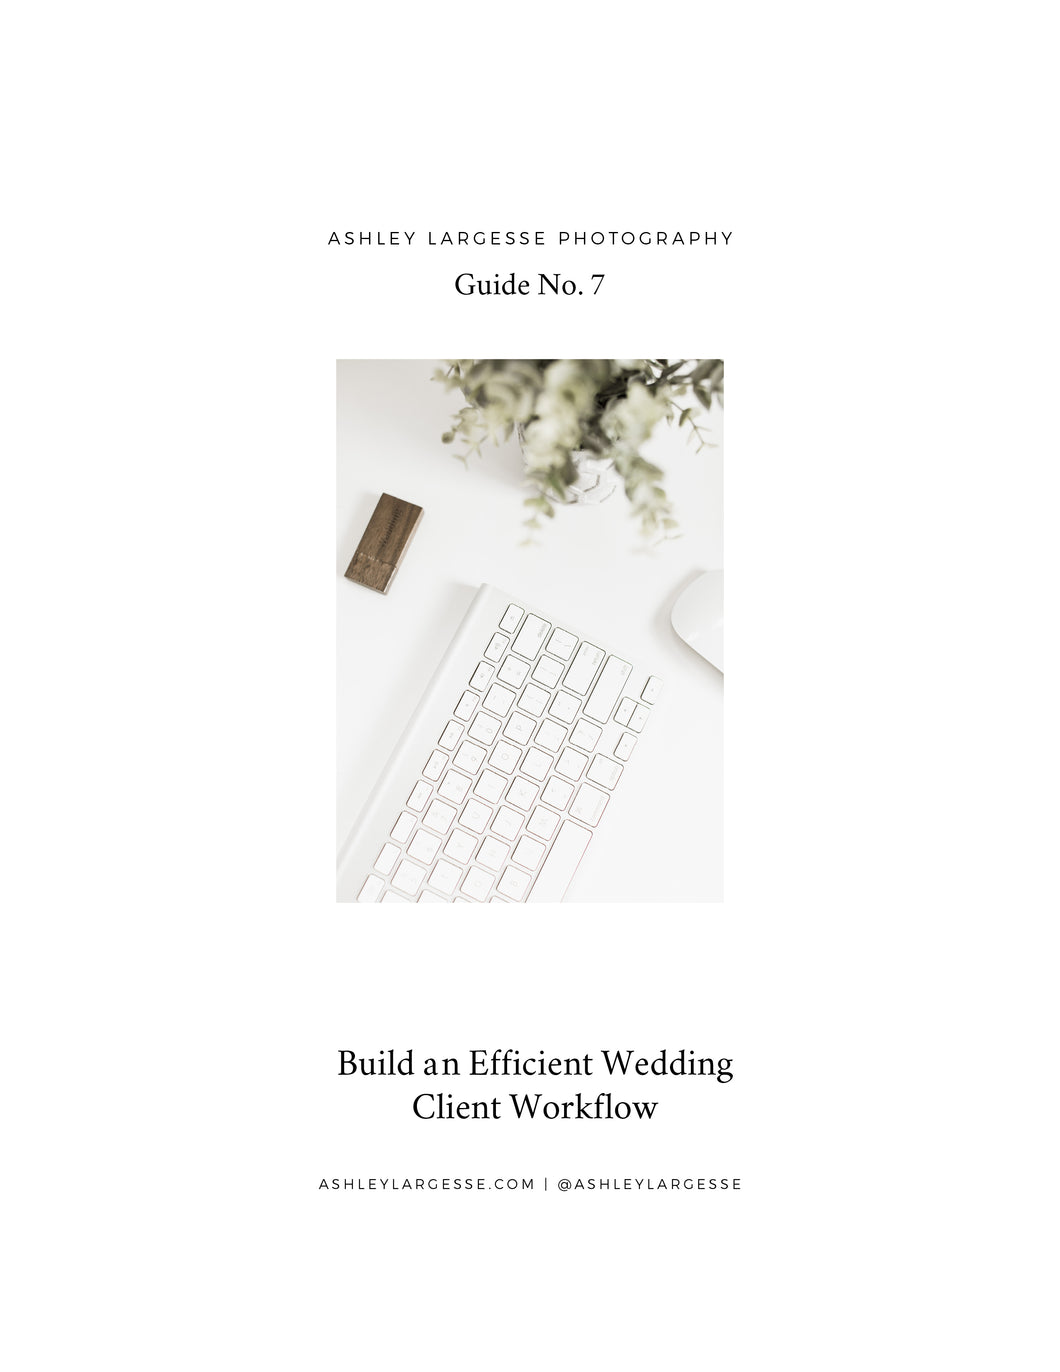 Build an Efficient Wedding Client Workflow